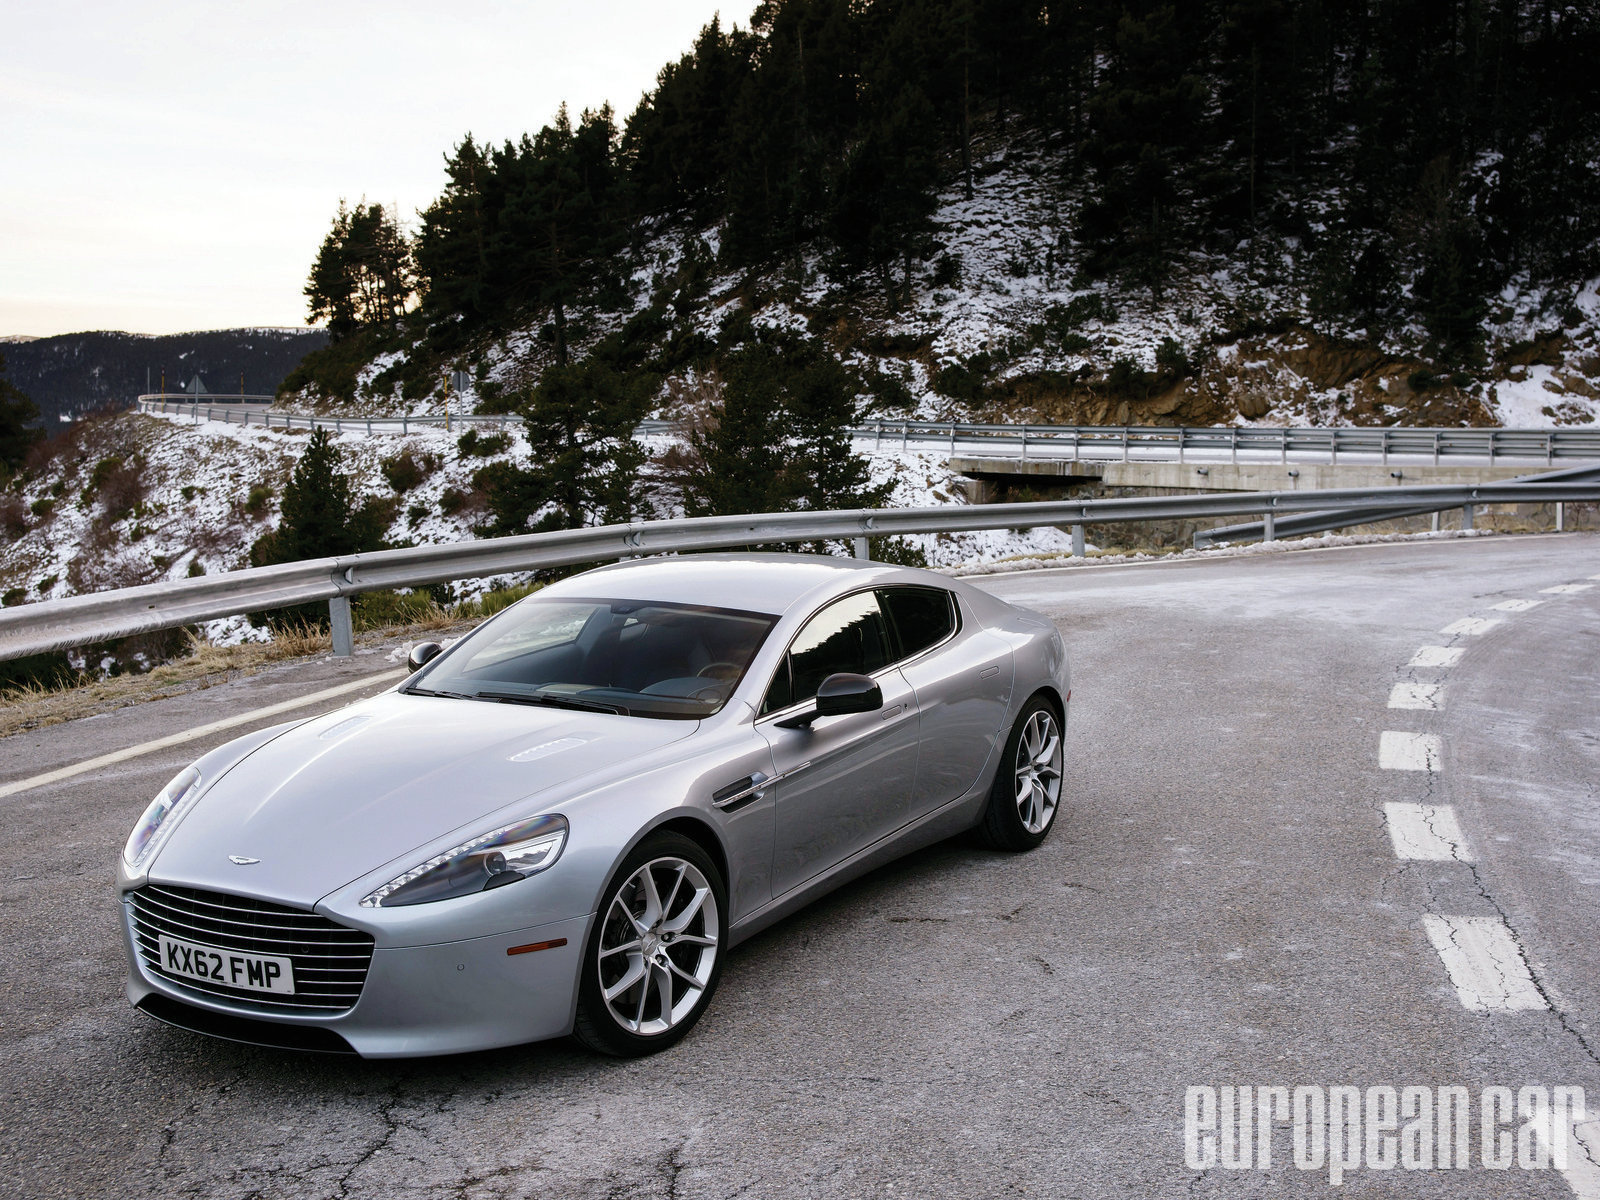 rapide s – Automobile Wallpapers in HD | Iphone,| Android,| Desktop 15 Wallpaper